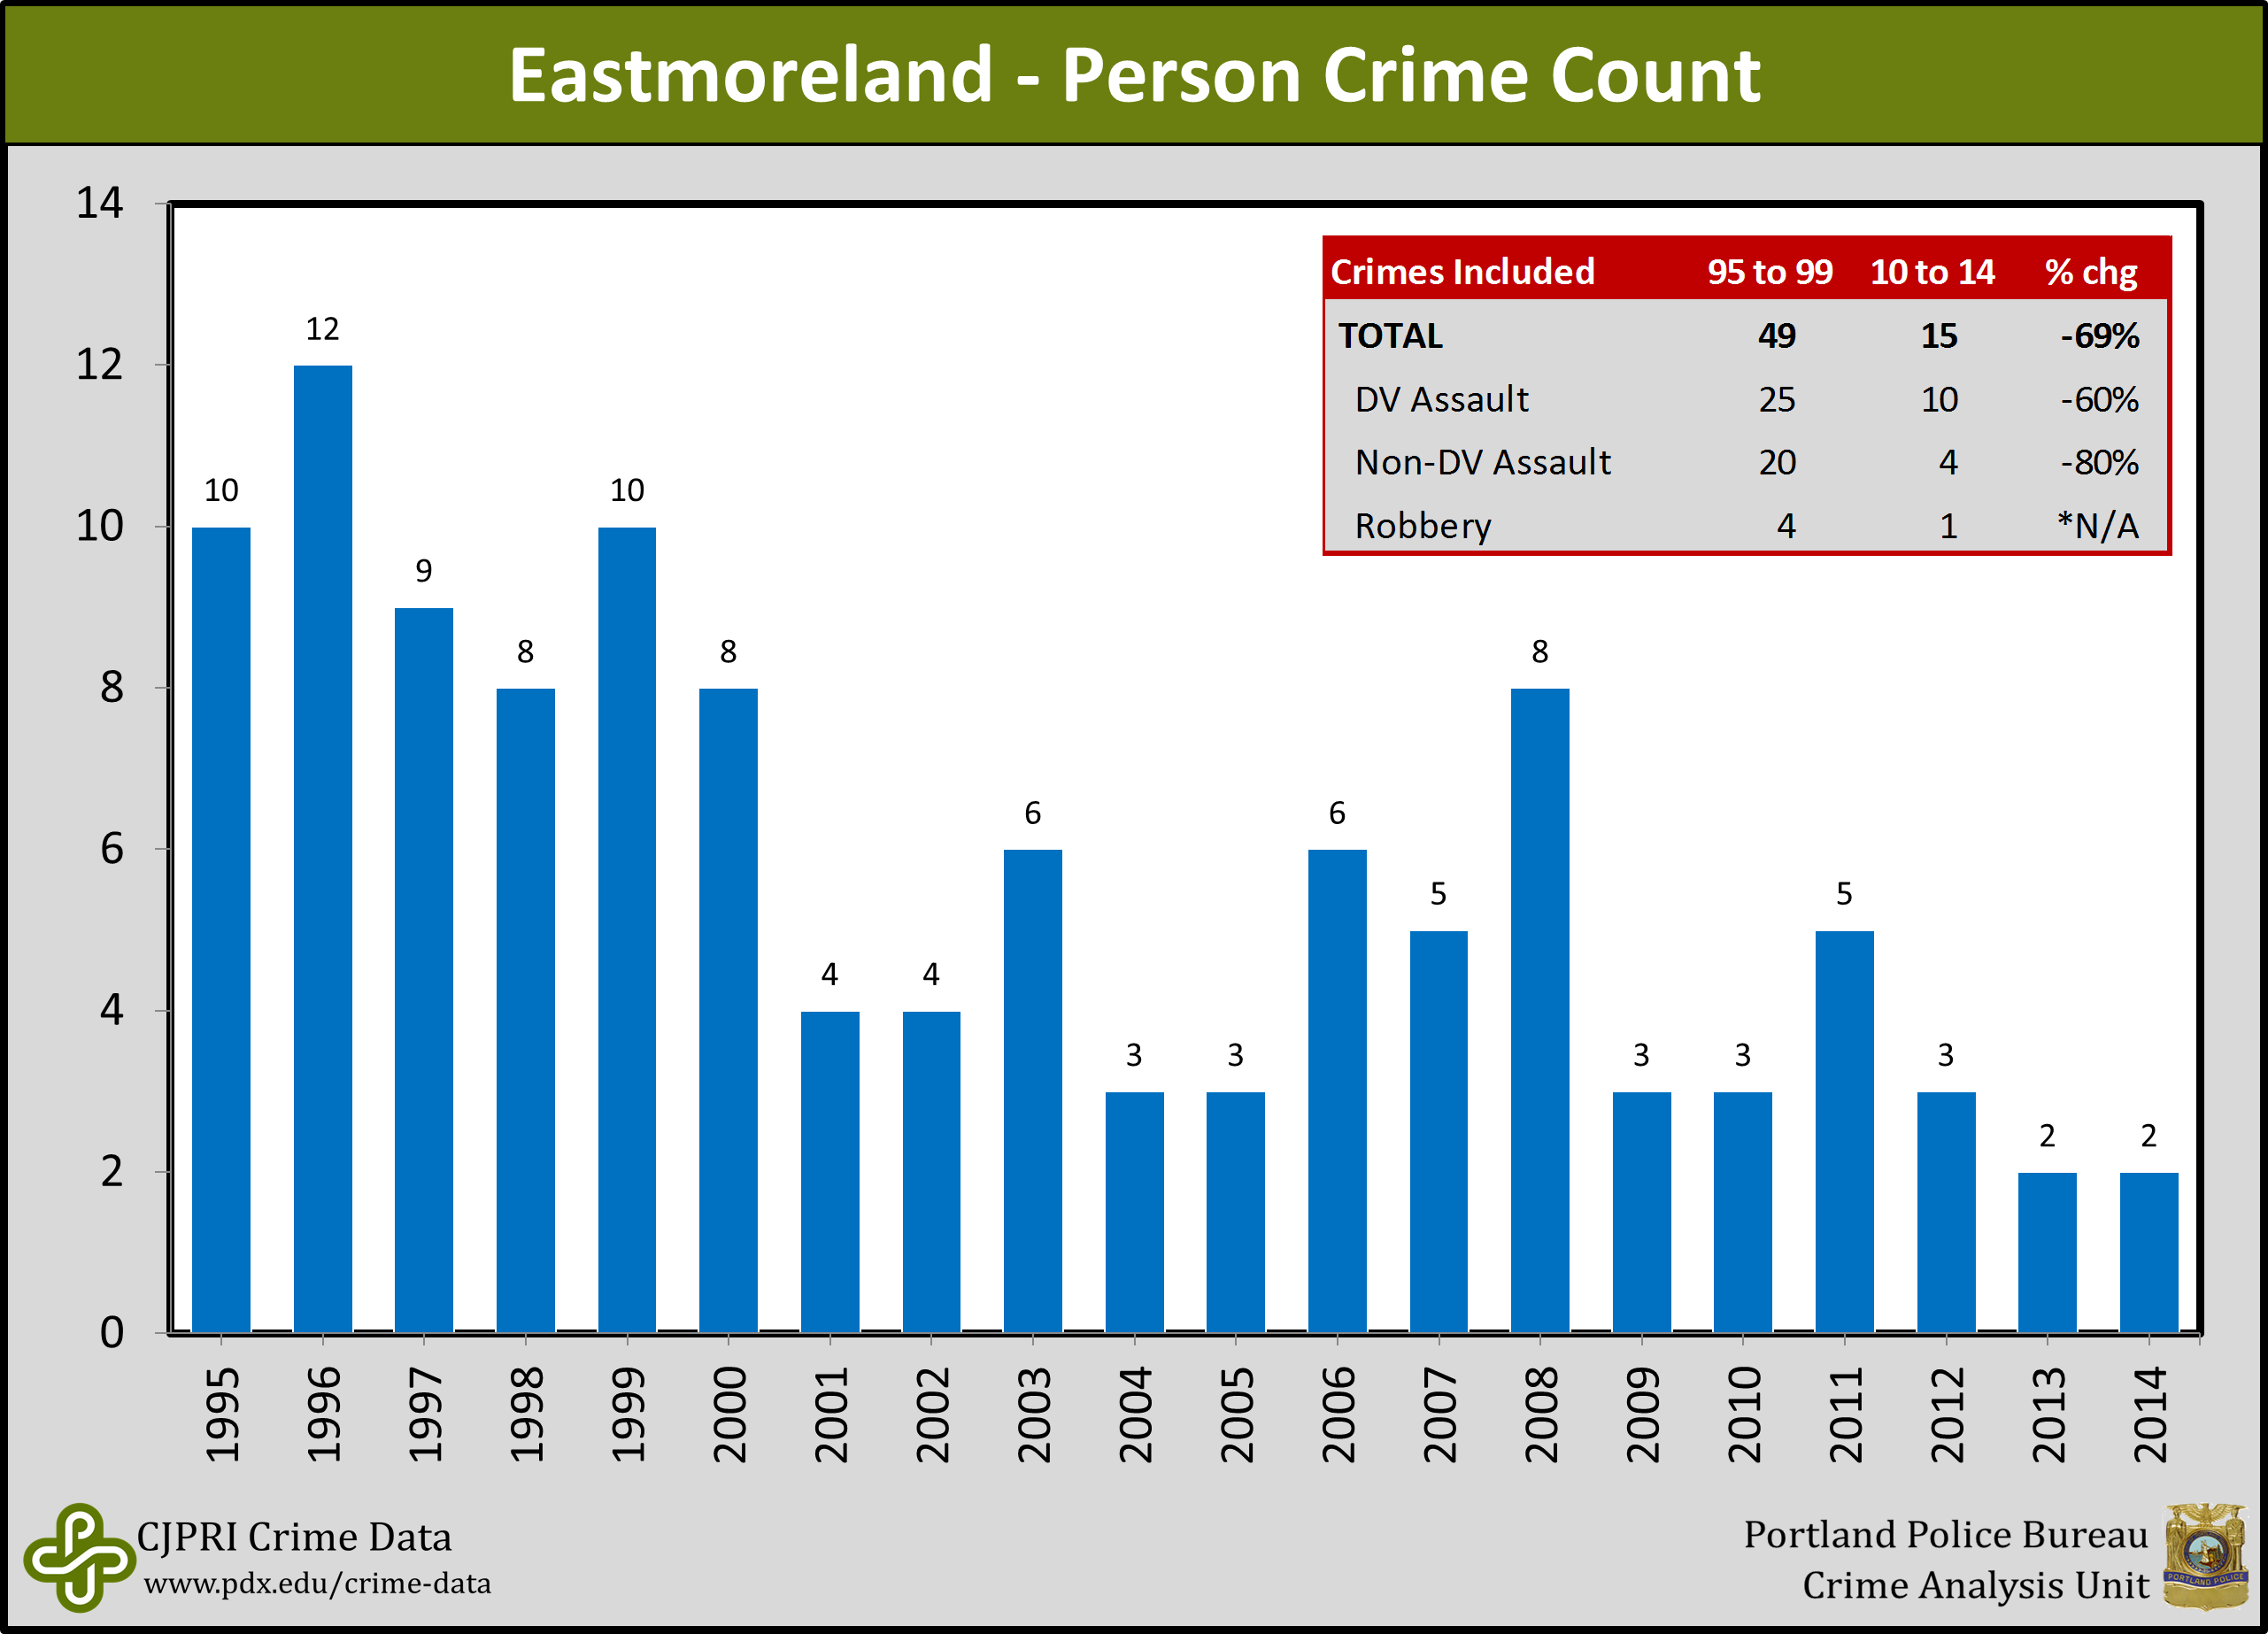 united states crime or data aficionado Welcome to city-data we're able to create detailed, informative profiles for every city in the united states from crime rates to weather patterns.